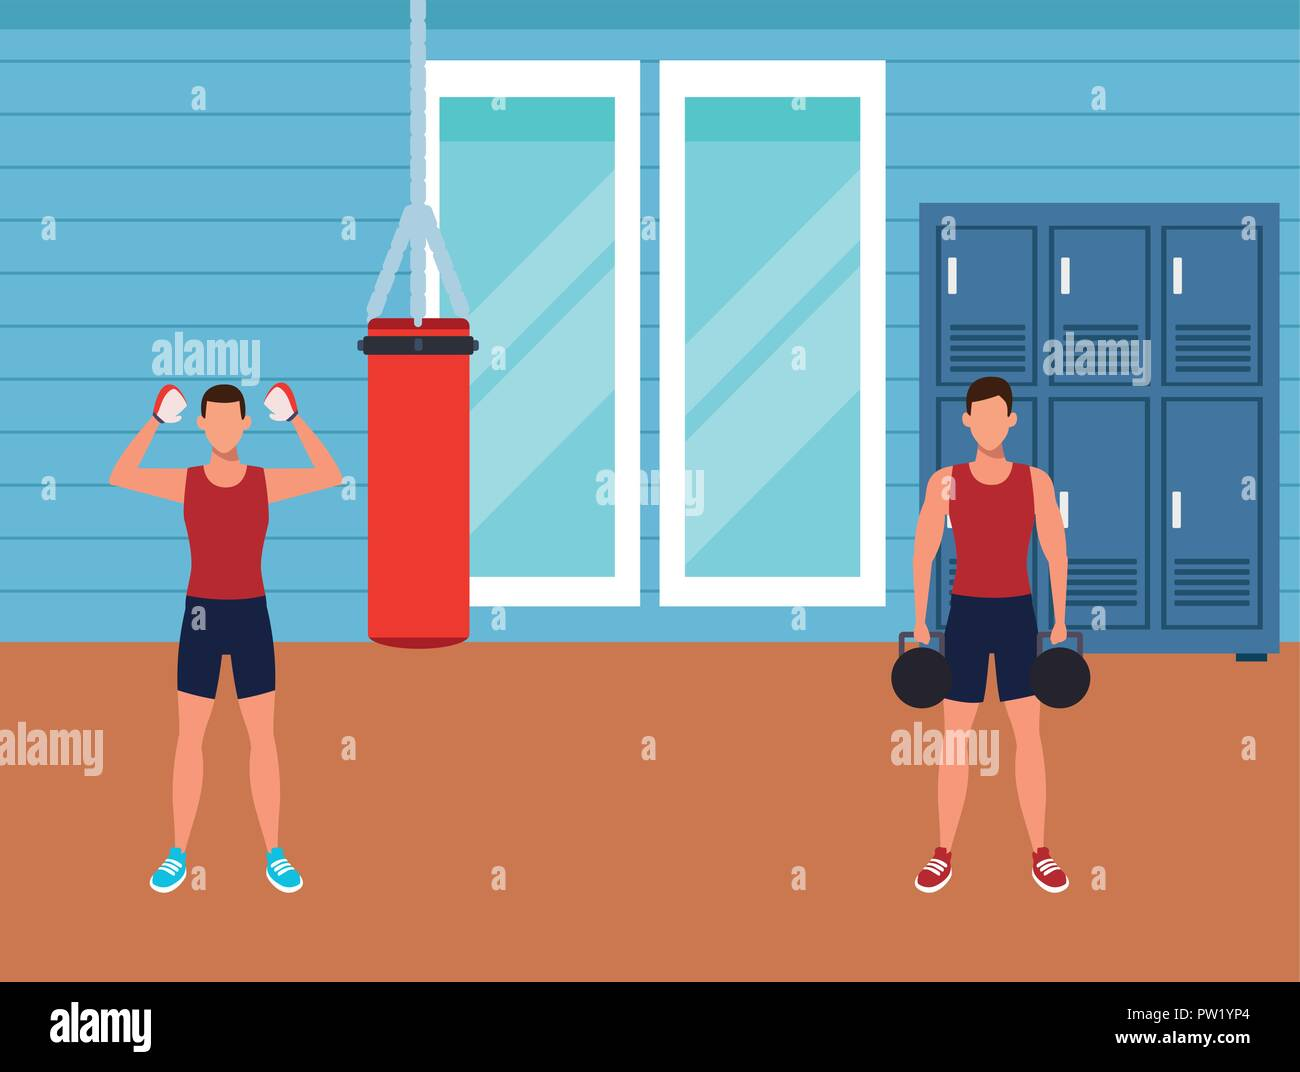 Top empty gym room clip art vector graphics and illustrations